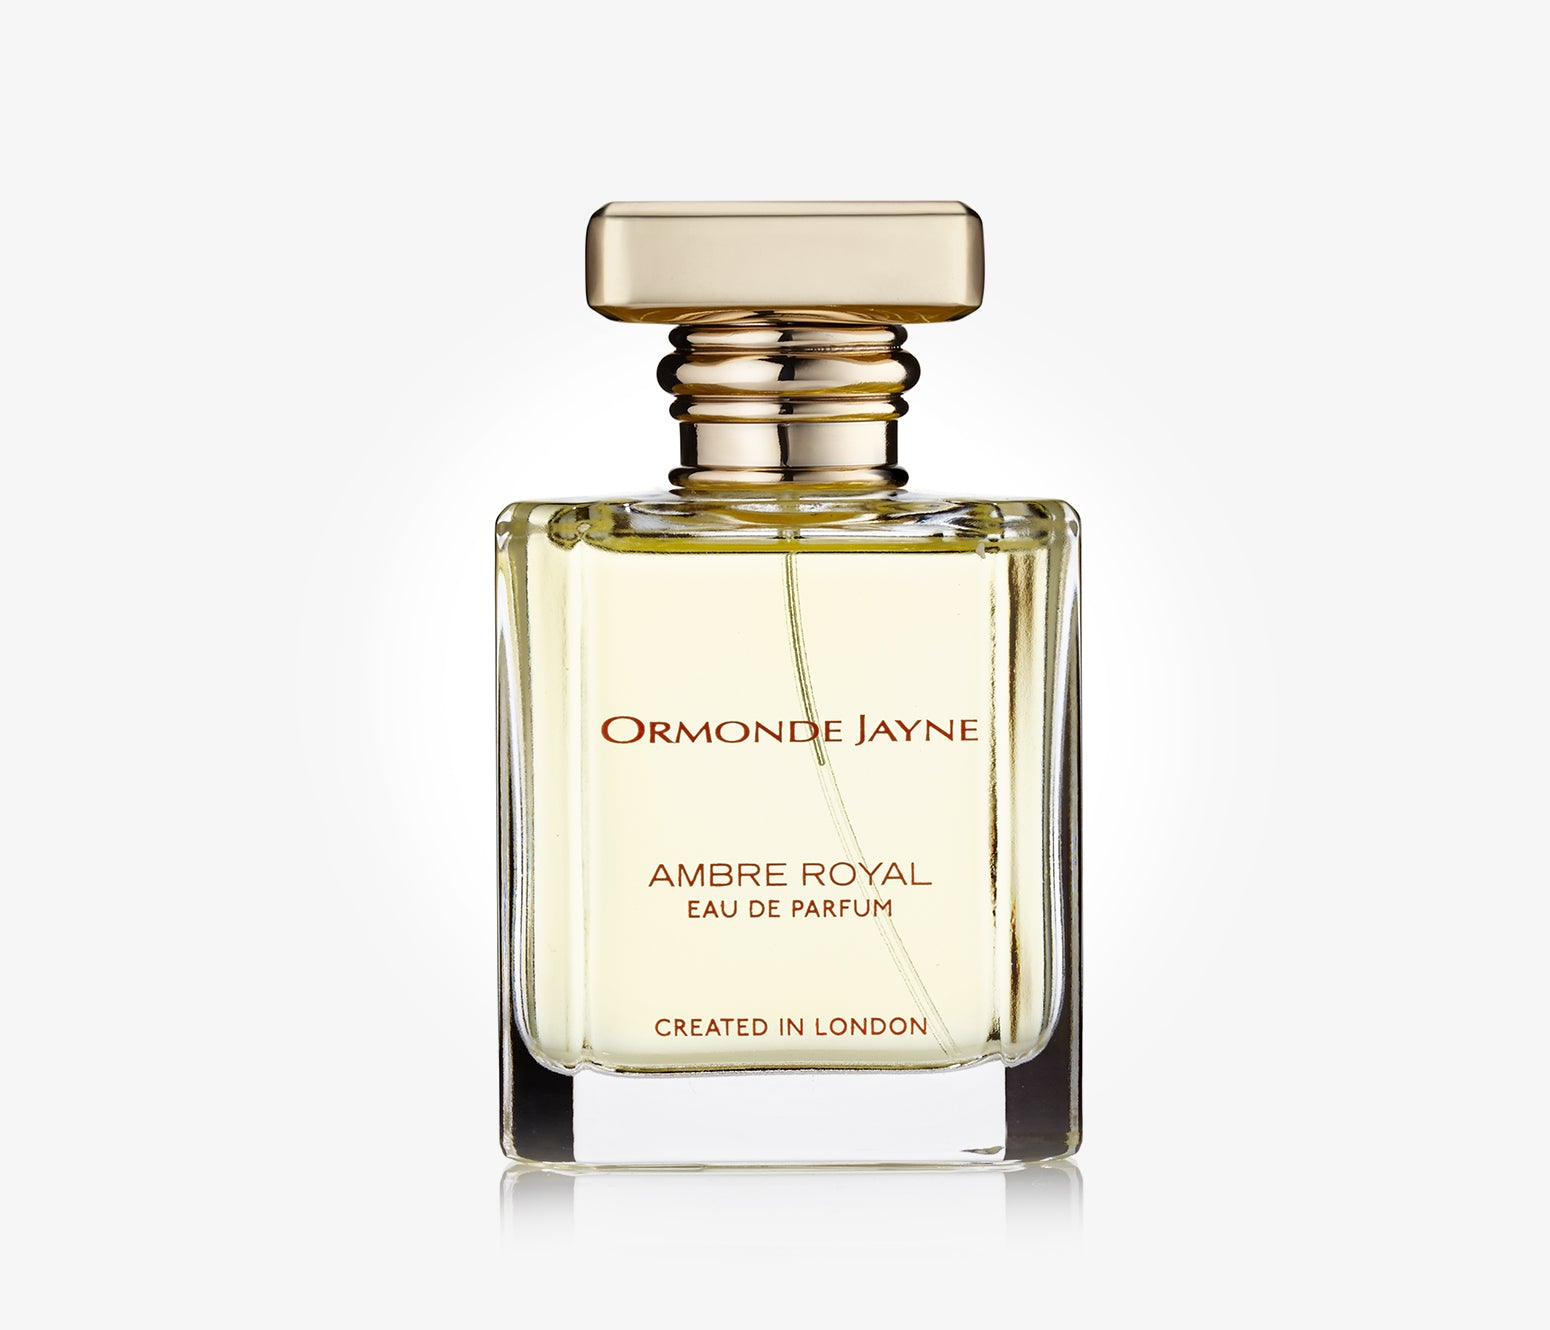 Ormonde Jayne - Ambre Royal - 50ml - ENV001 - Product Image - Fragrance - Les Senteurs